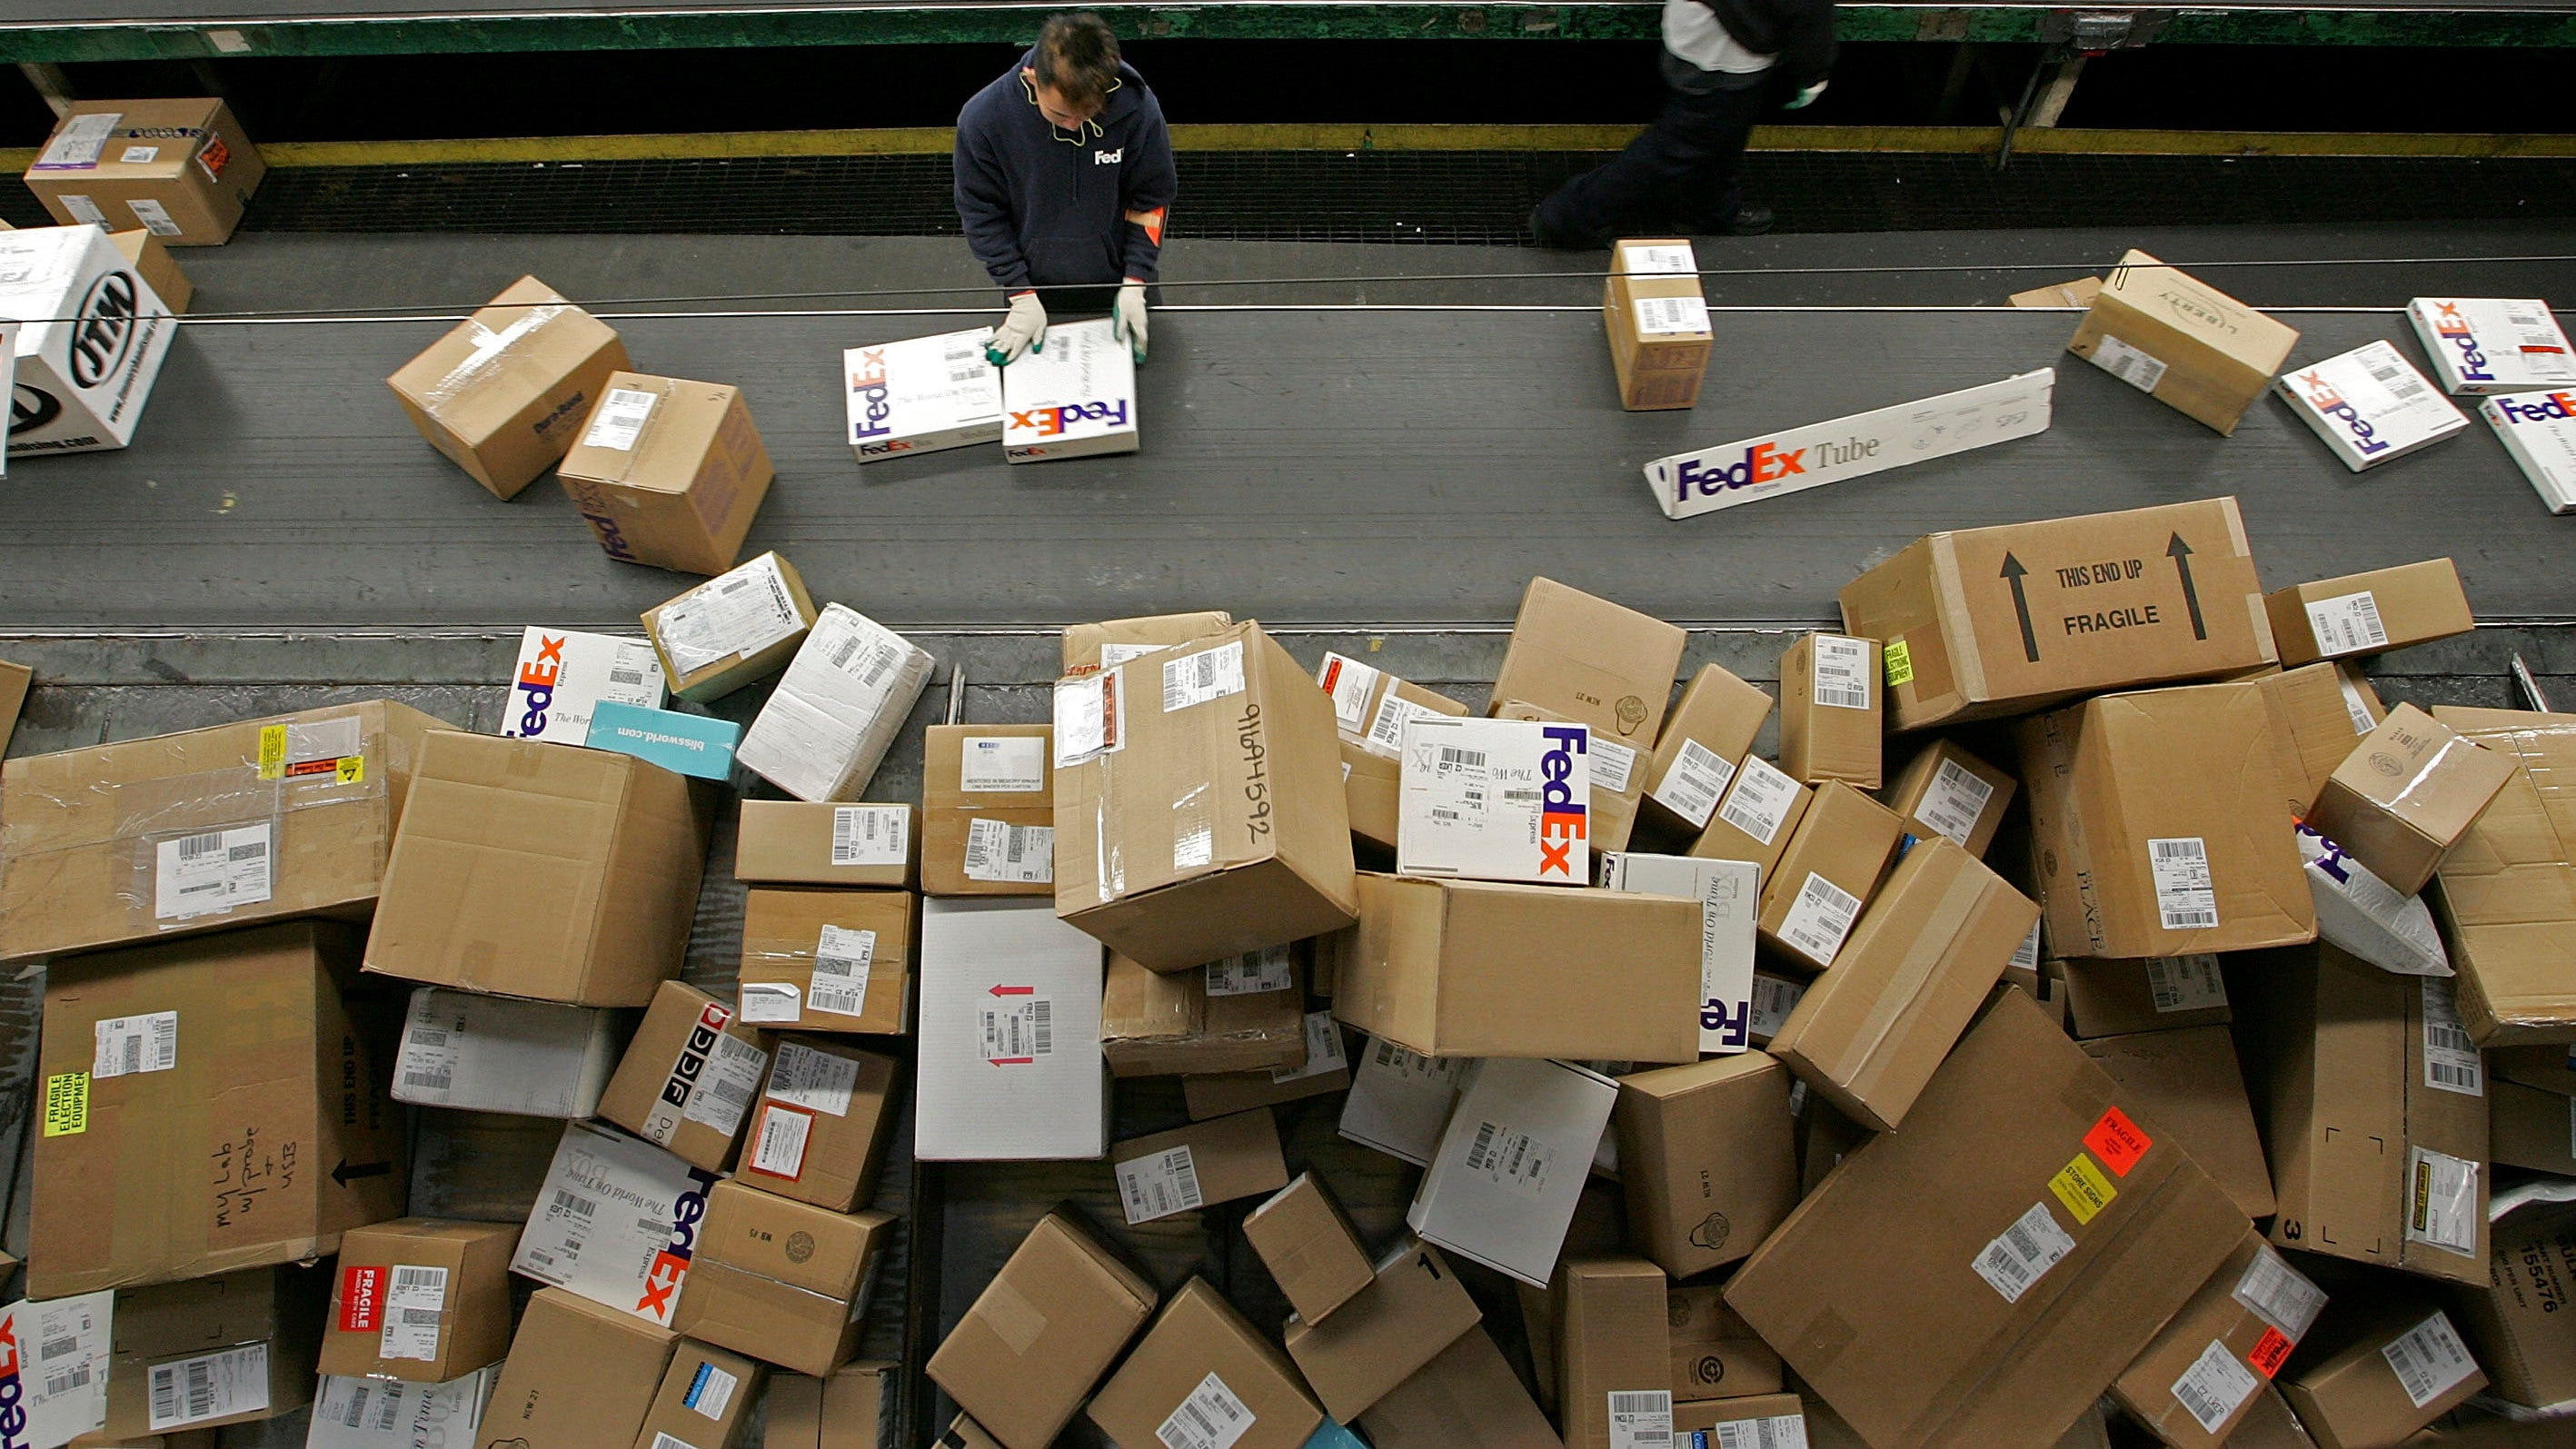 Beware New Texting Scam That Looks Like FedEx Tracking Notifications